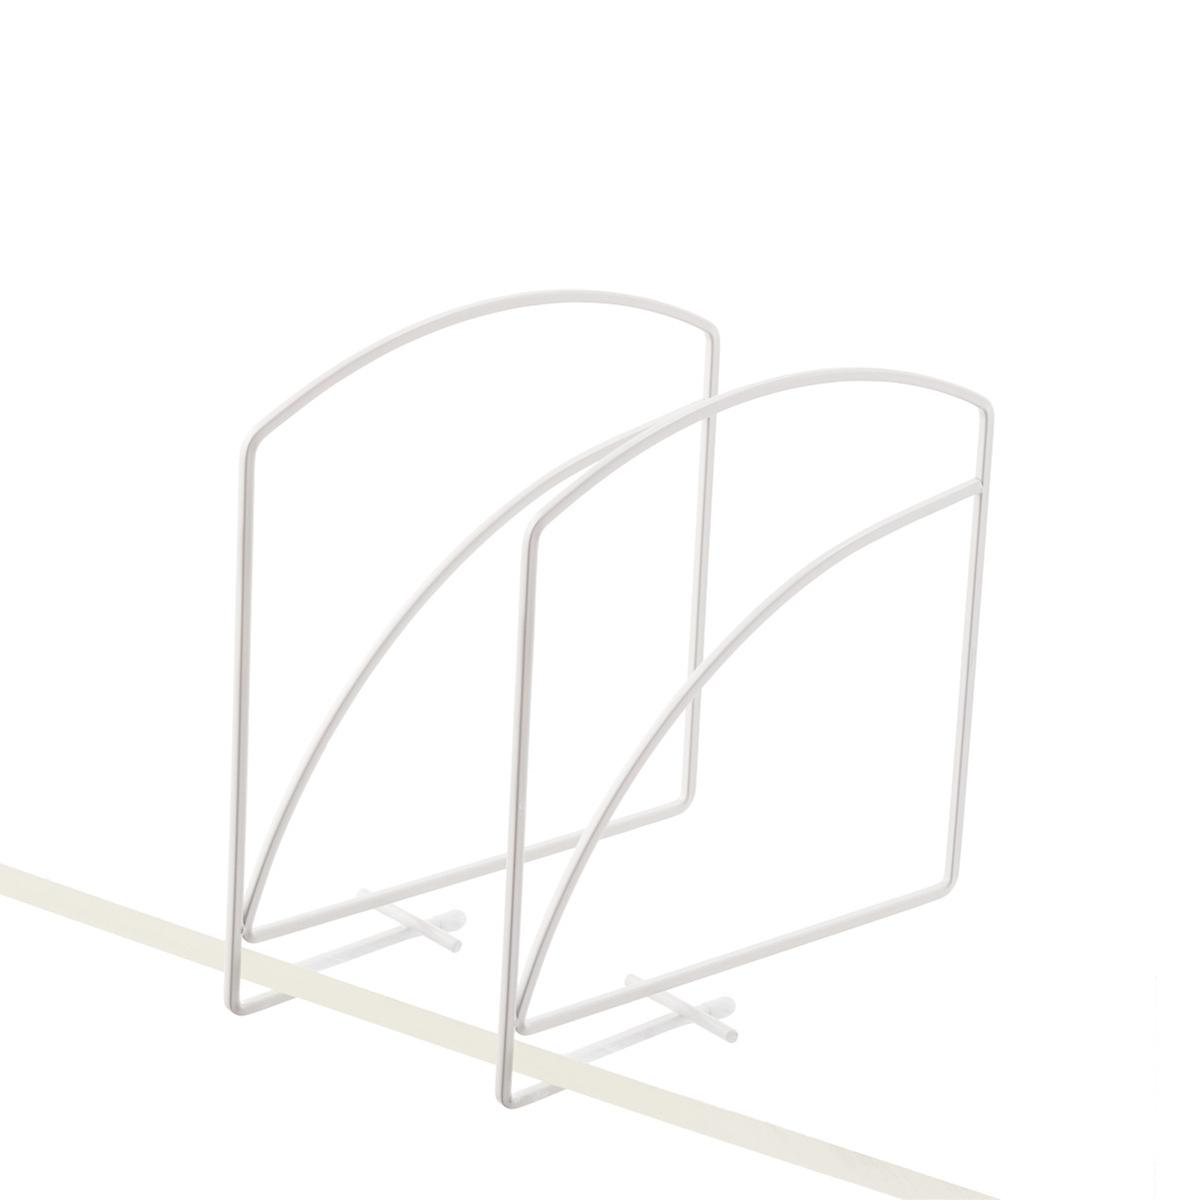 Shelf Dividers - Lynk Solid Shelf Dividers | The Container Store